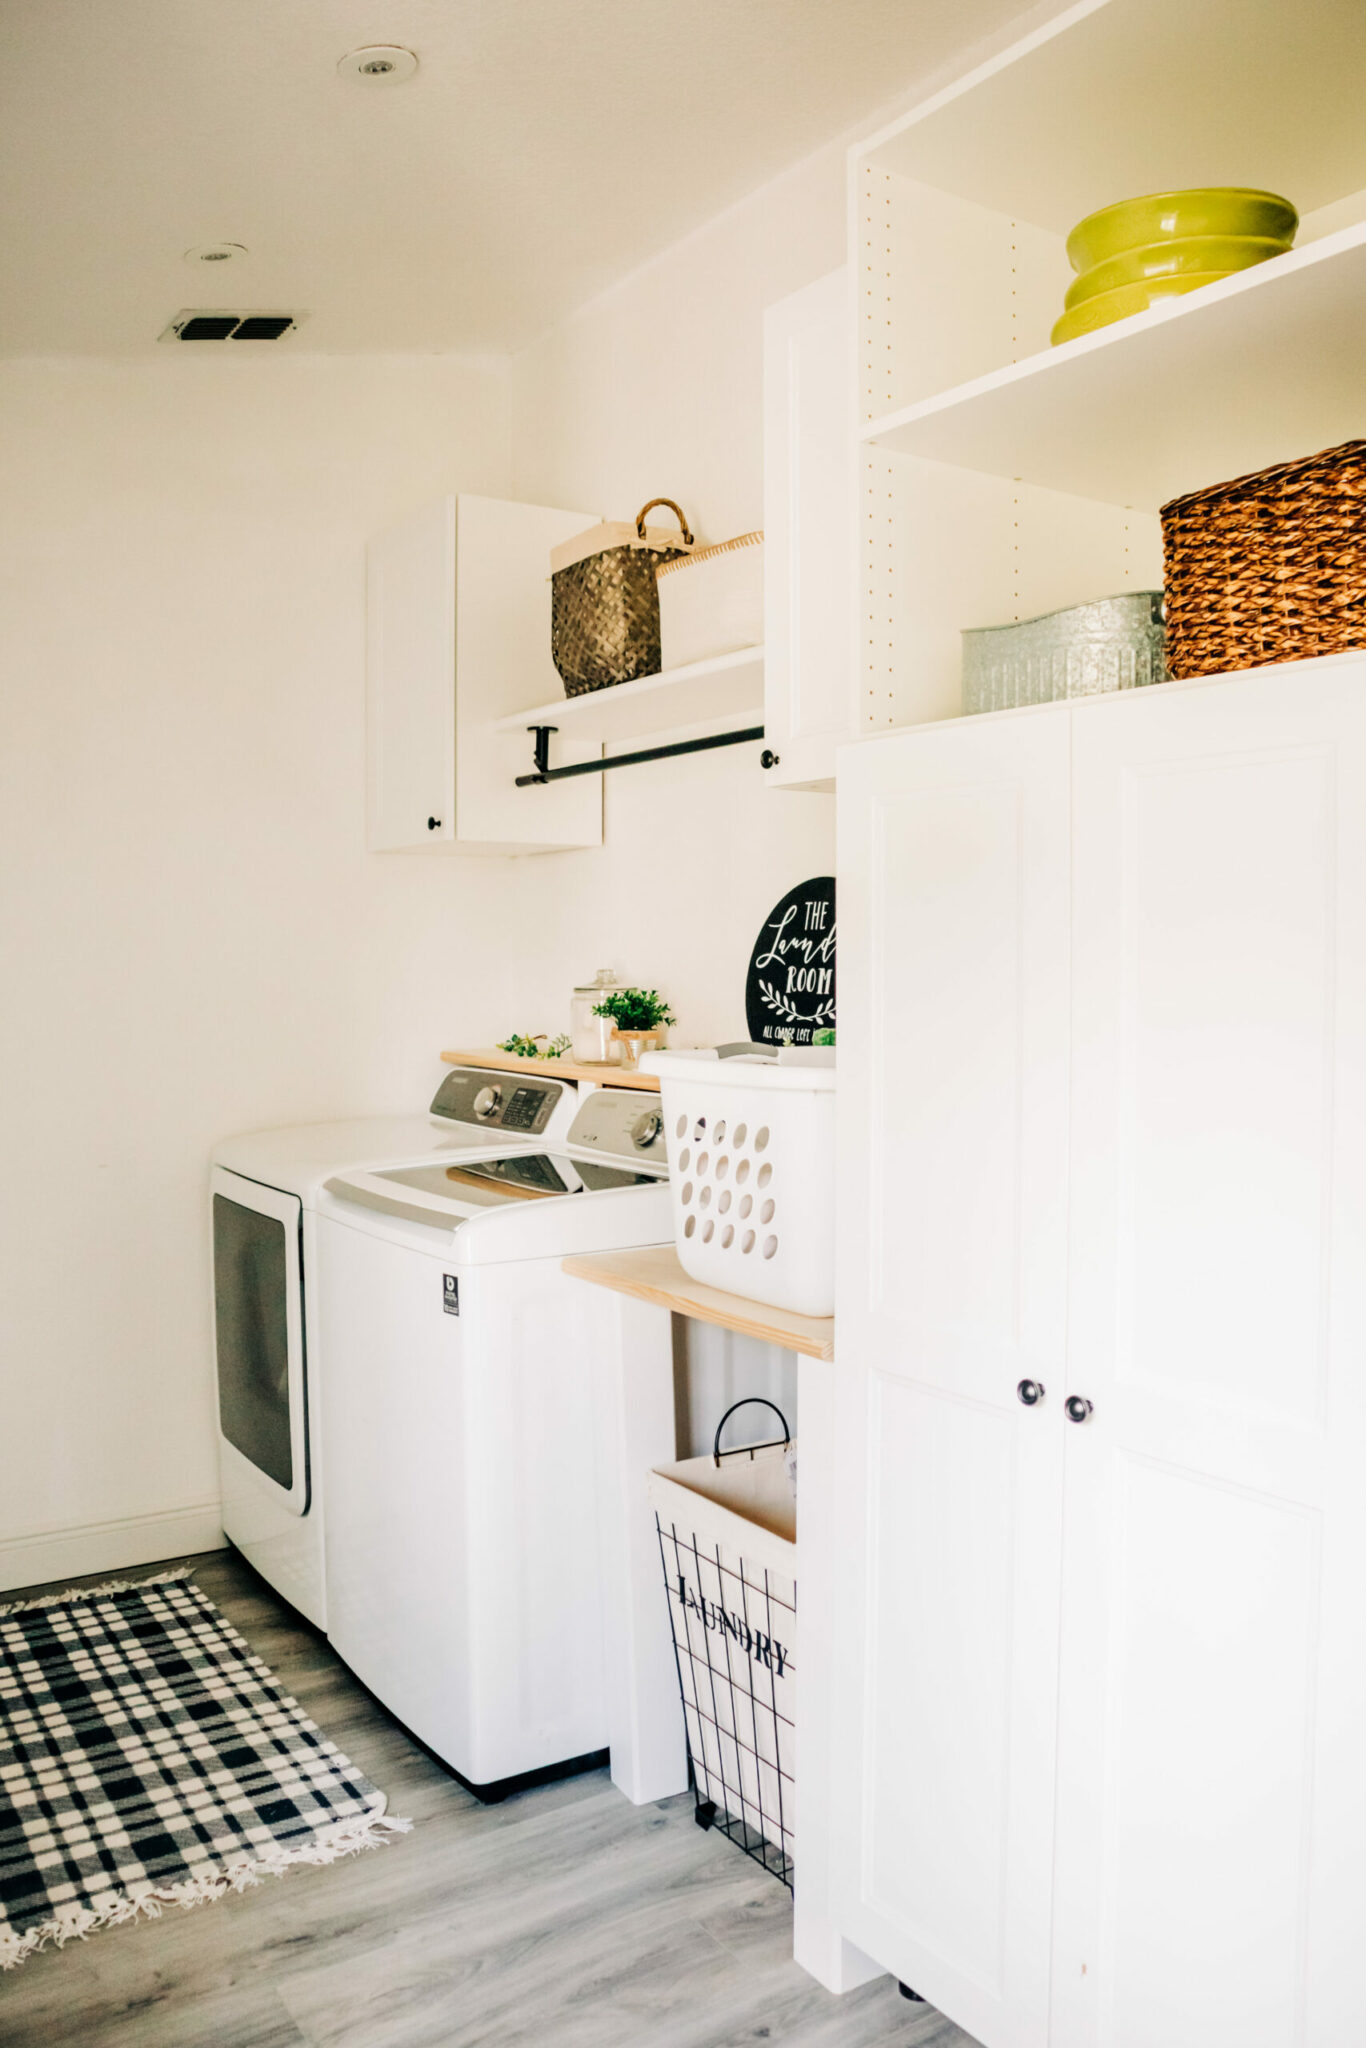 small laundry room makeover ideas, laundry room makeovers gallery,basement laundry room makeover ideas, laundry room makeovers with top loading washer, laundry room ideas, laundry room ideas on a budget, small laundry room makeover stacked washer dryer, laundry room design ideas